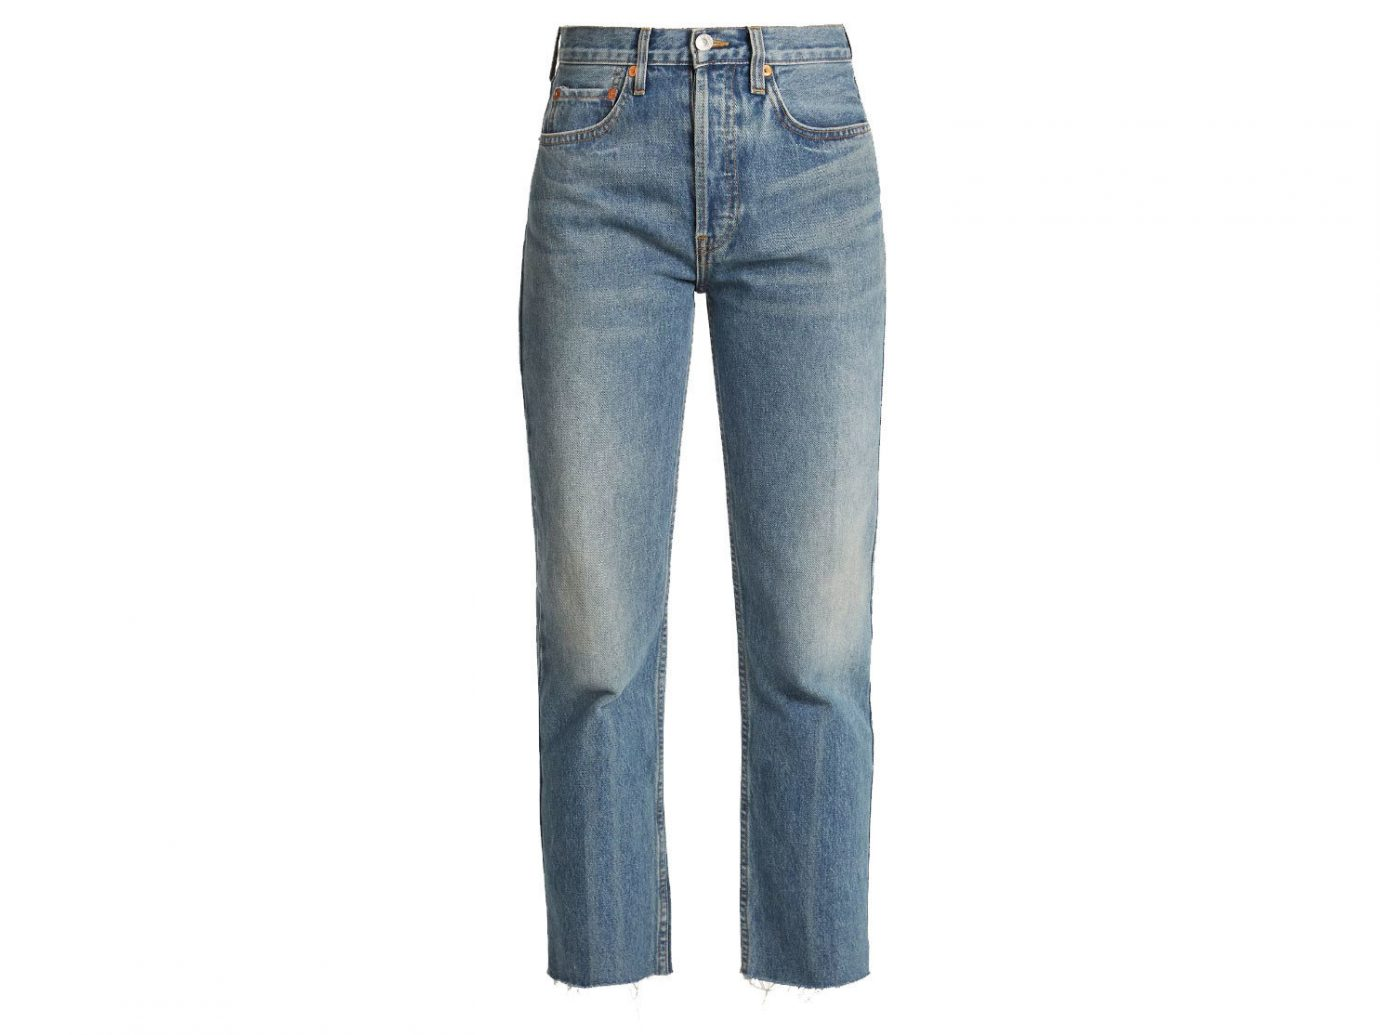 City NYC Style + Design Travel Shop denim jeans pocket trousers product carpenter jeans